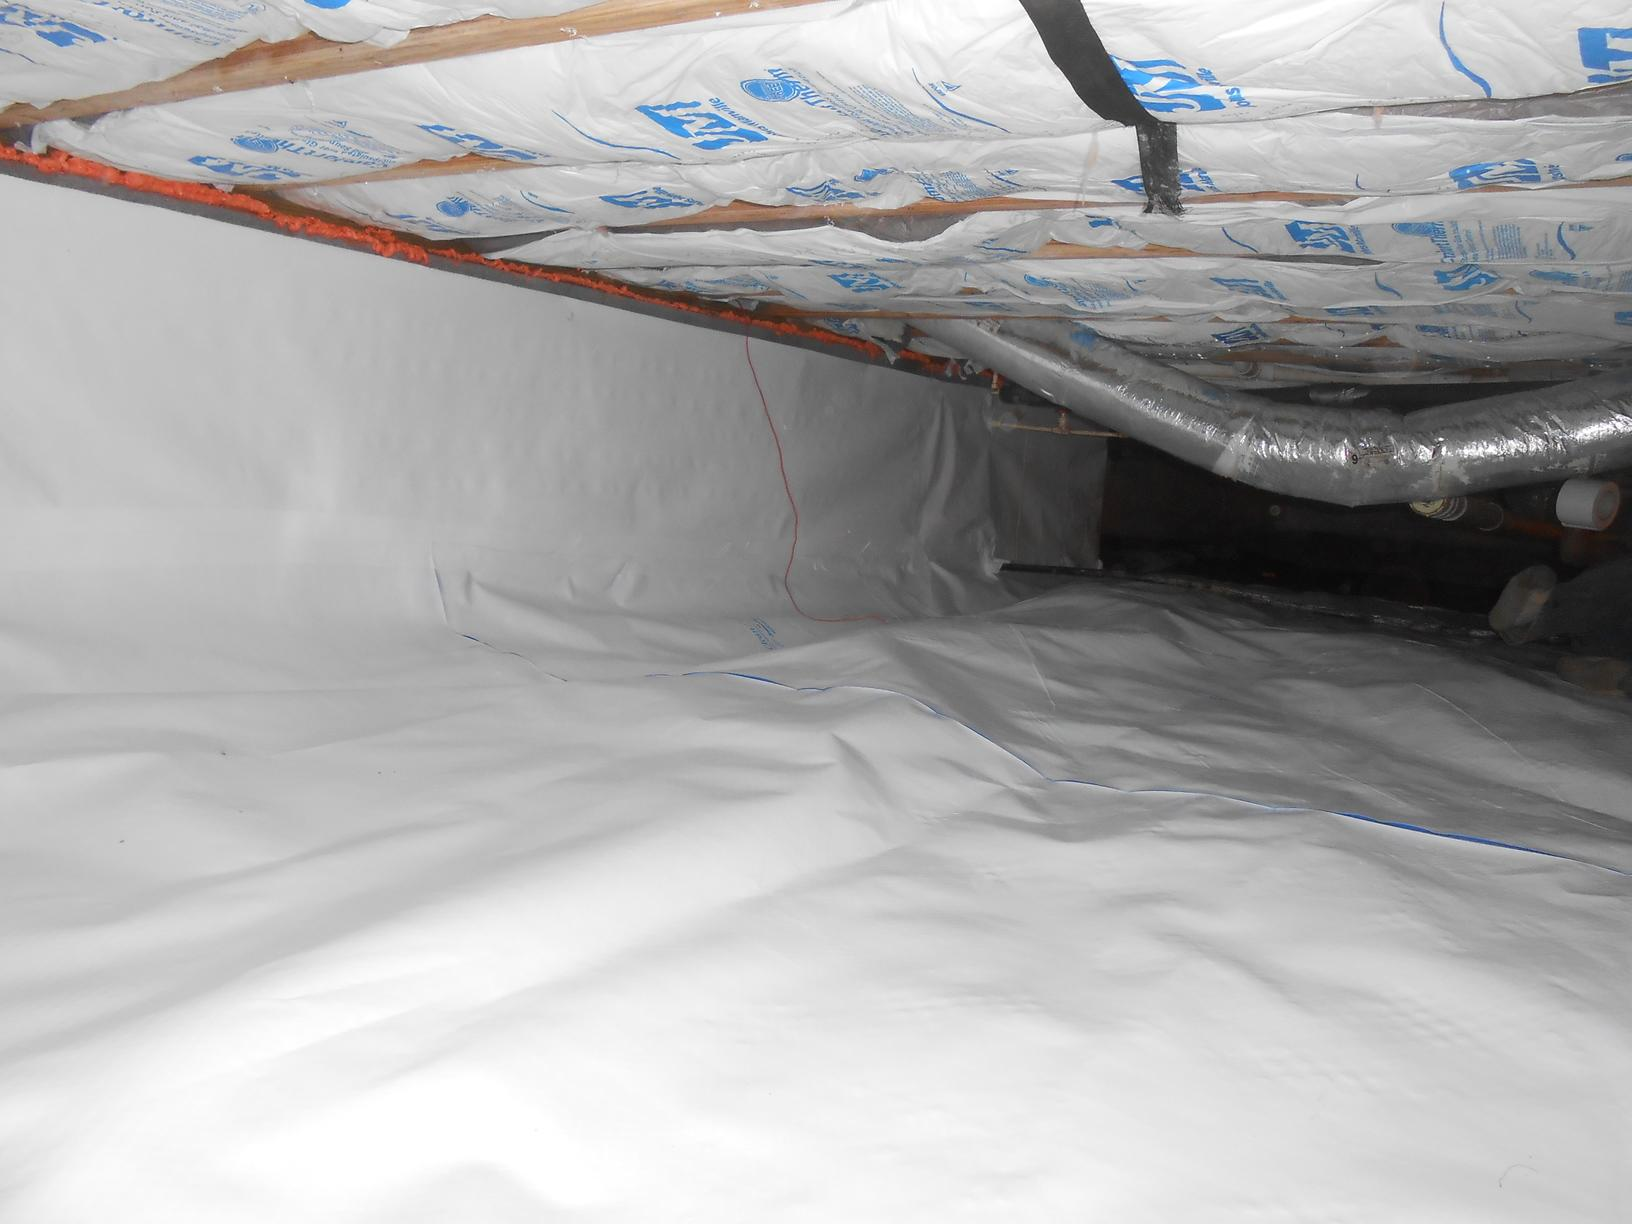 Crawl Space Encapsulation in Proctorville, OH - After Photo